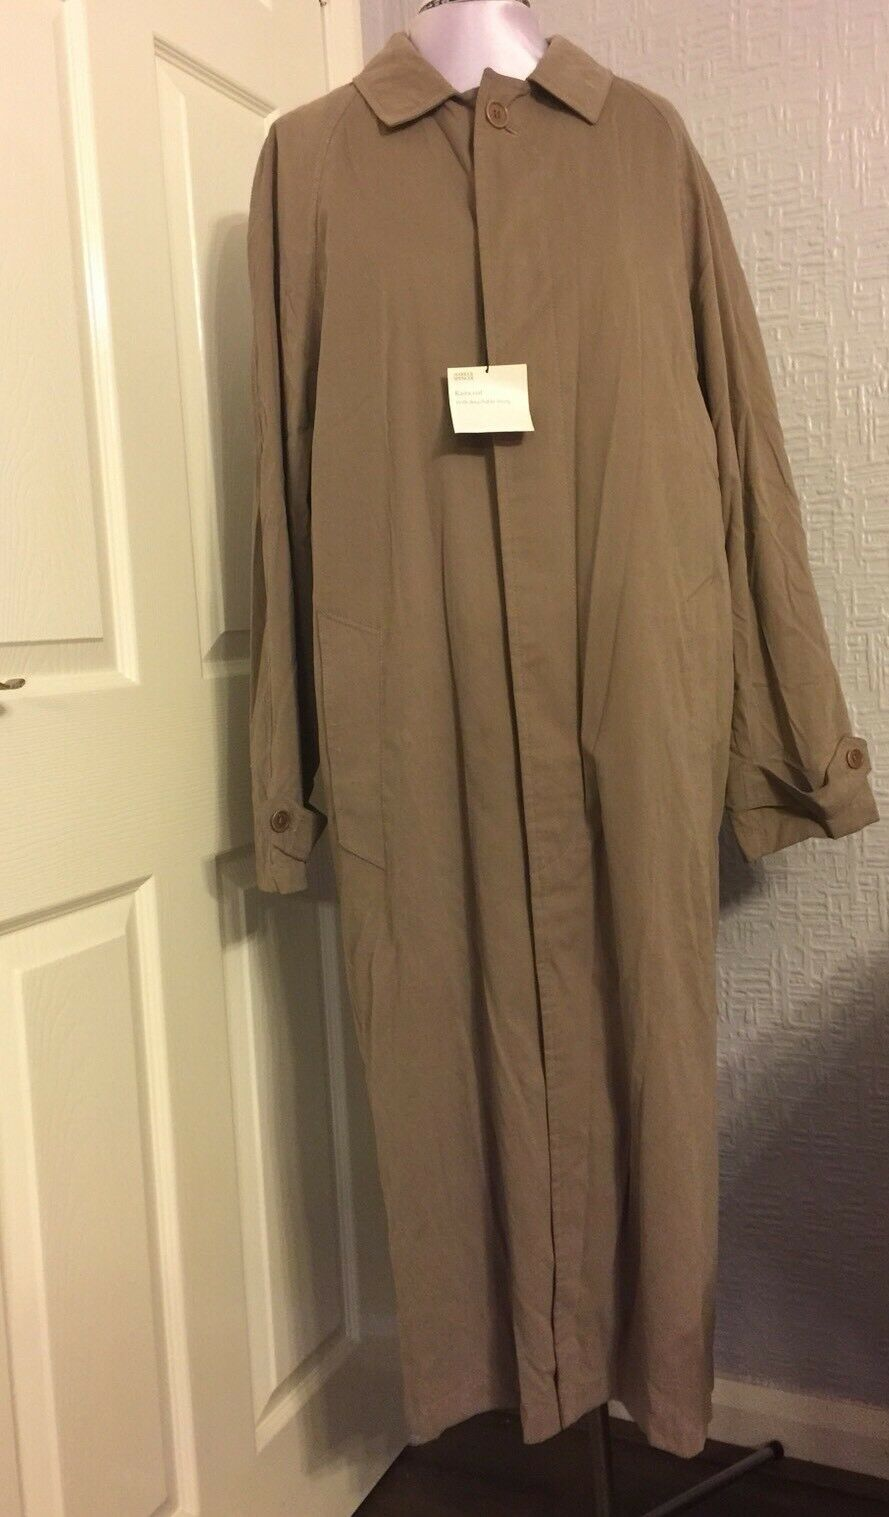 "BNWT M&S Italian Fabric Raincoat Size Medium Chest 97-102 Cm  38""-40"" In Beige(m"